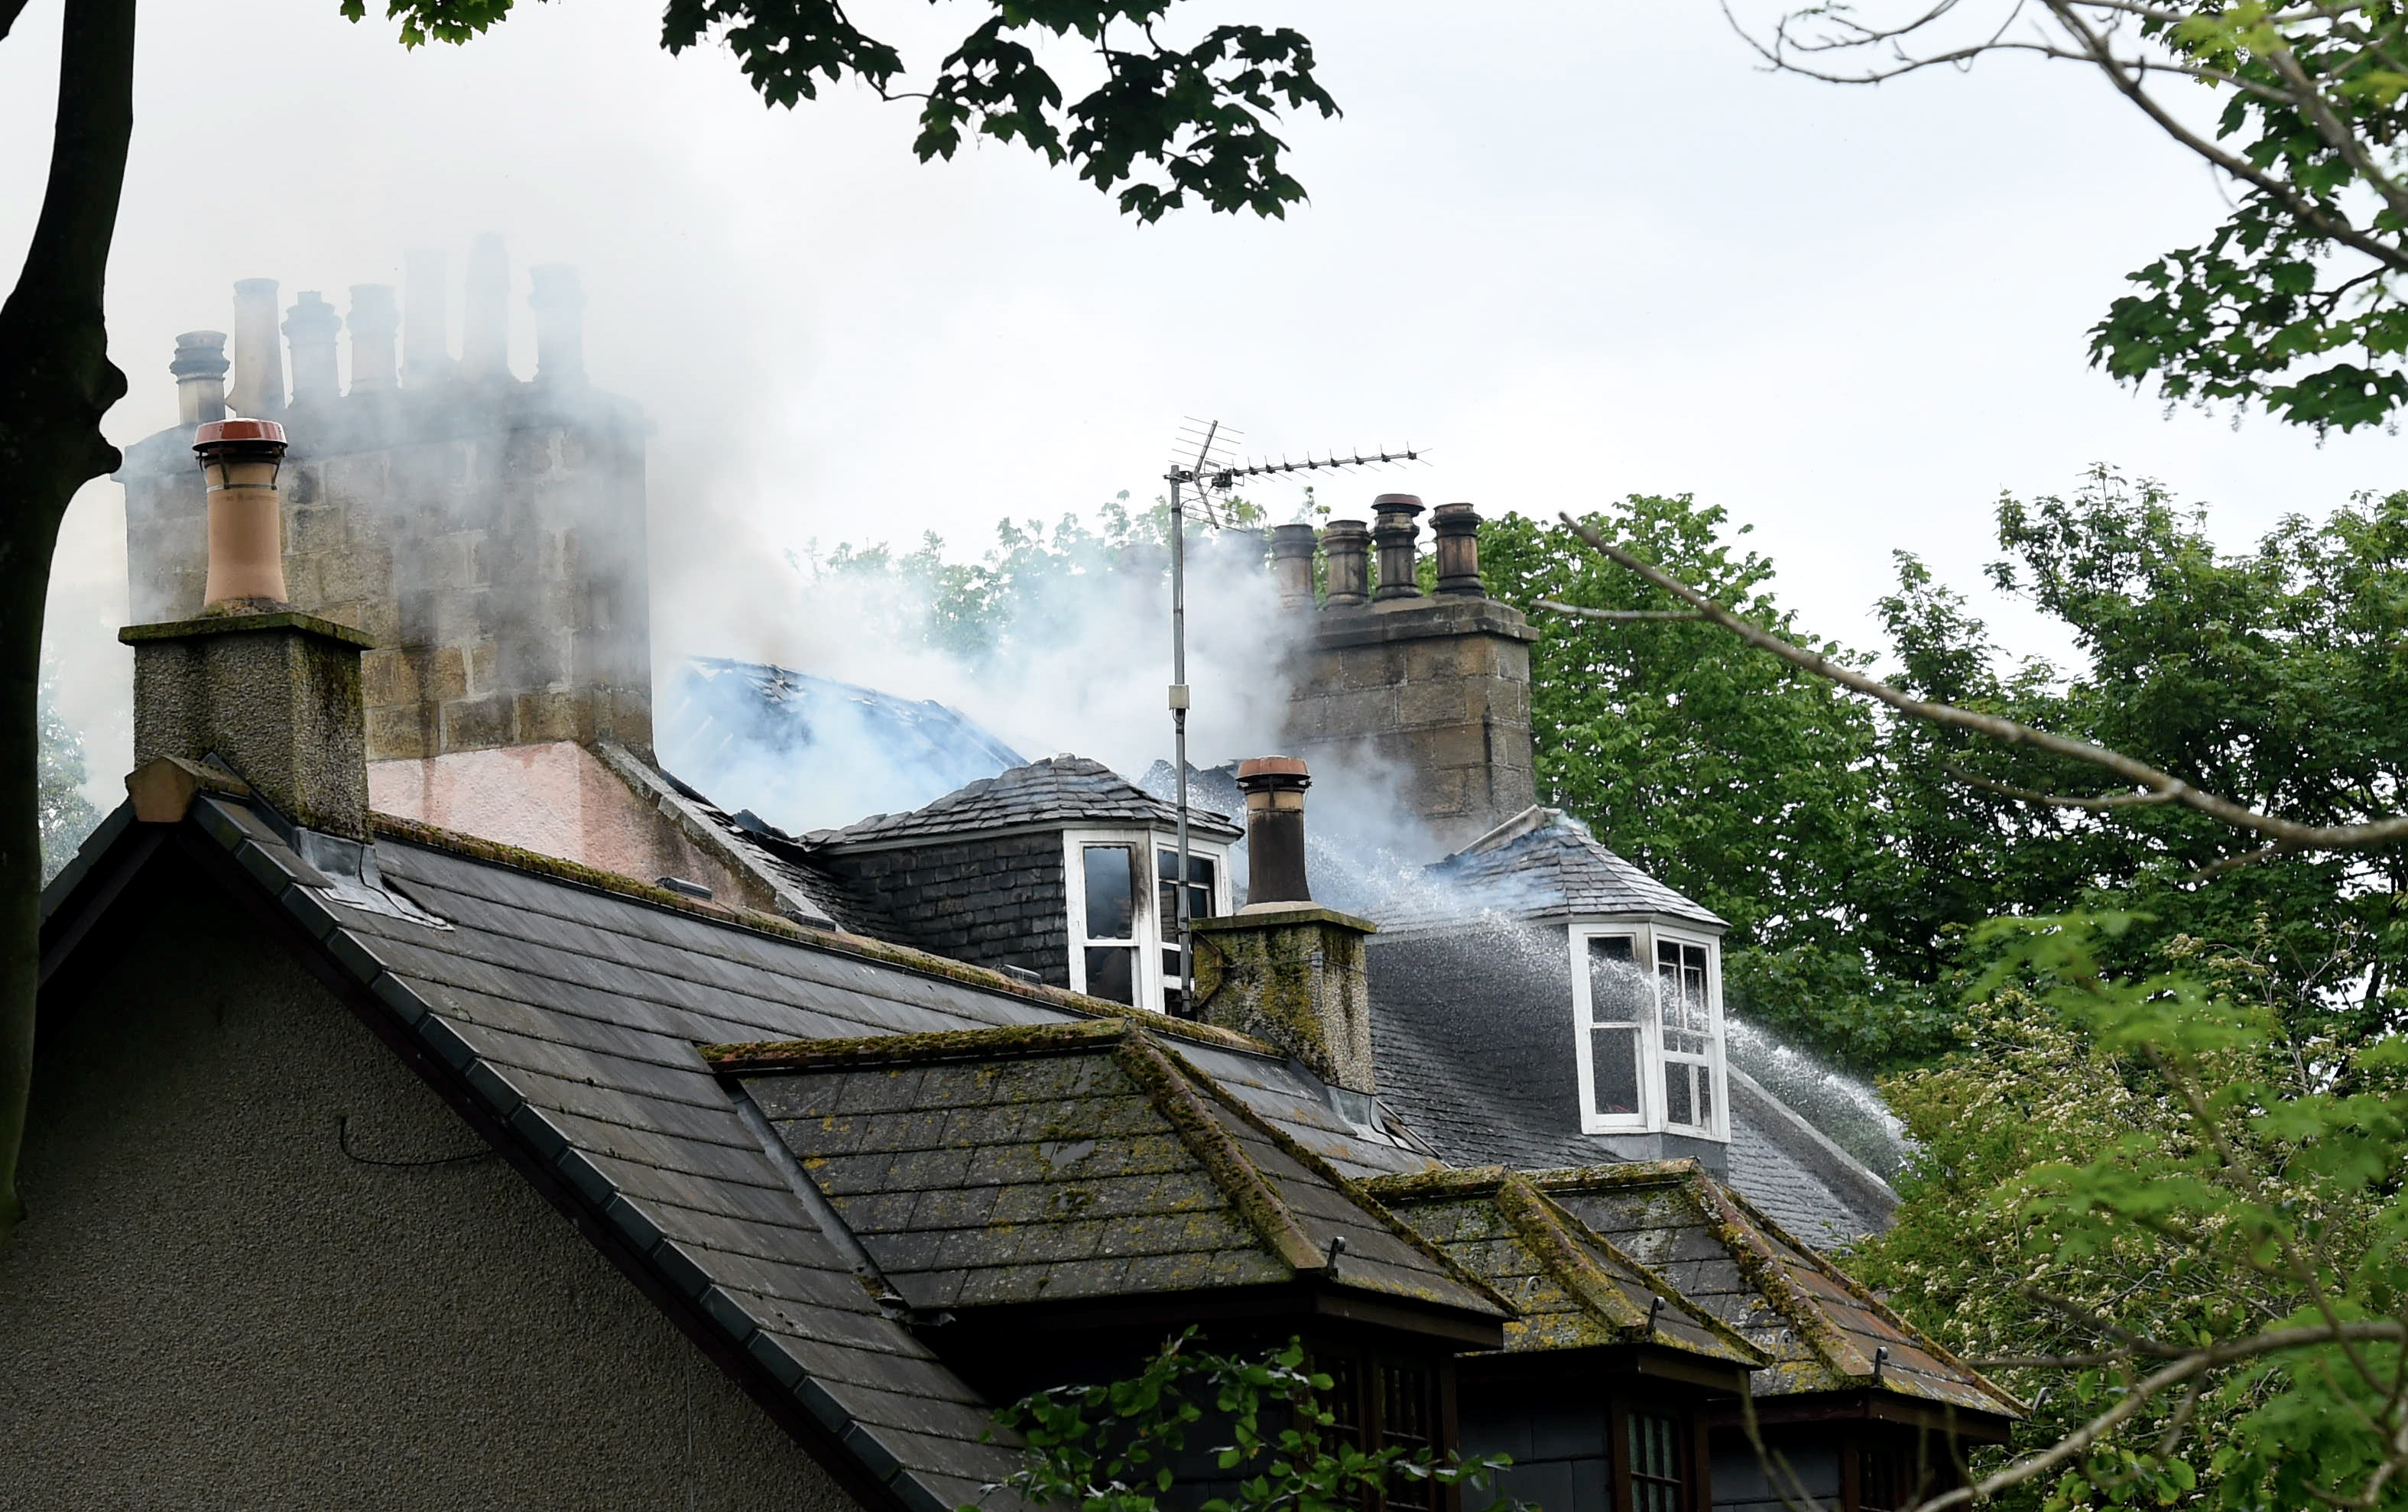 Fire crews were forced to leave the building after the blaze spread to the roof